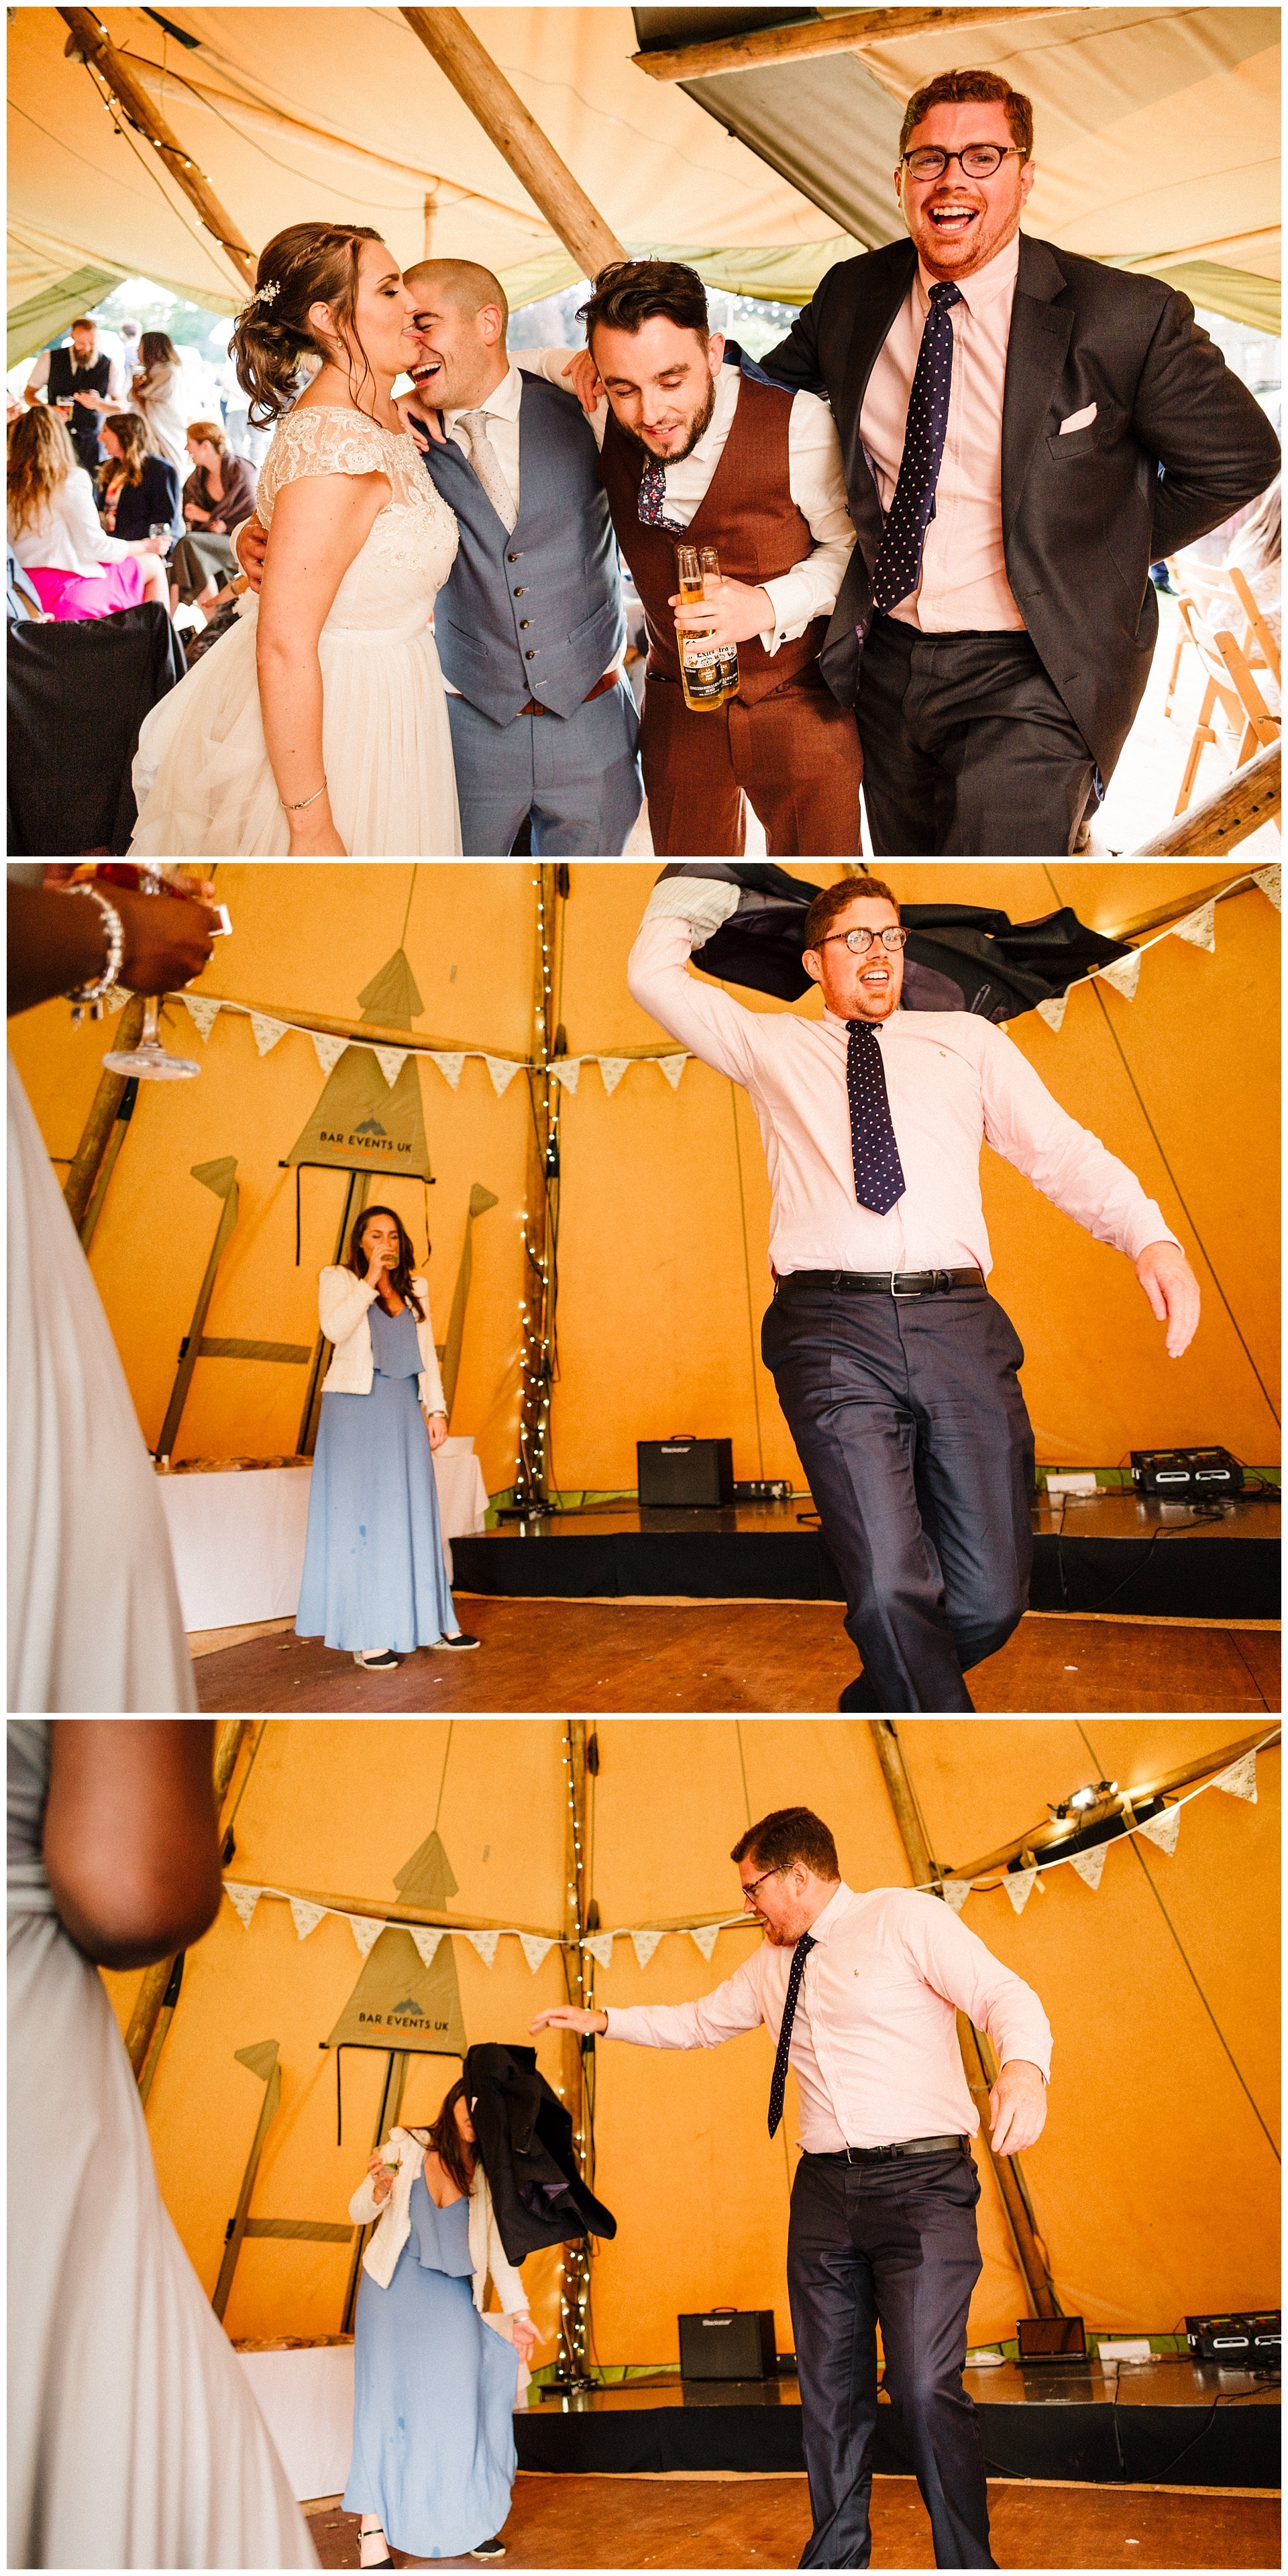 guests in a bar events uk tipi at a wedding in yorkshire